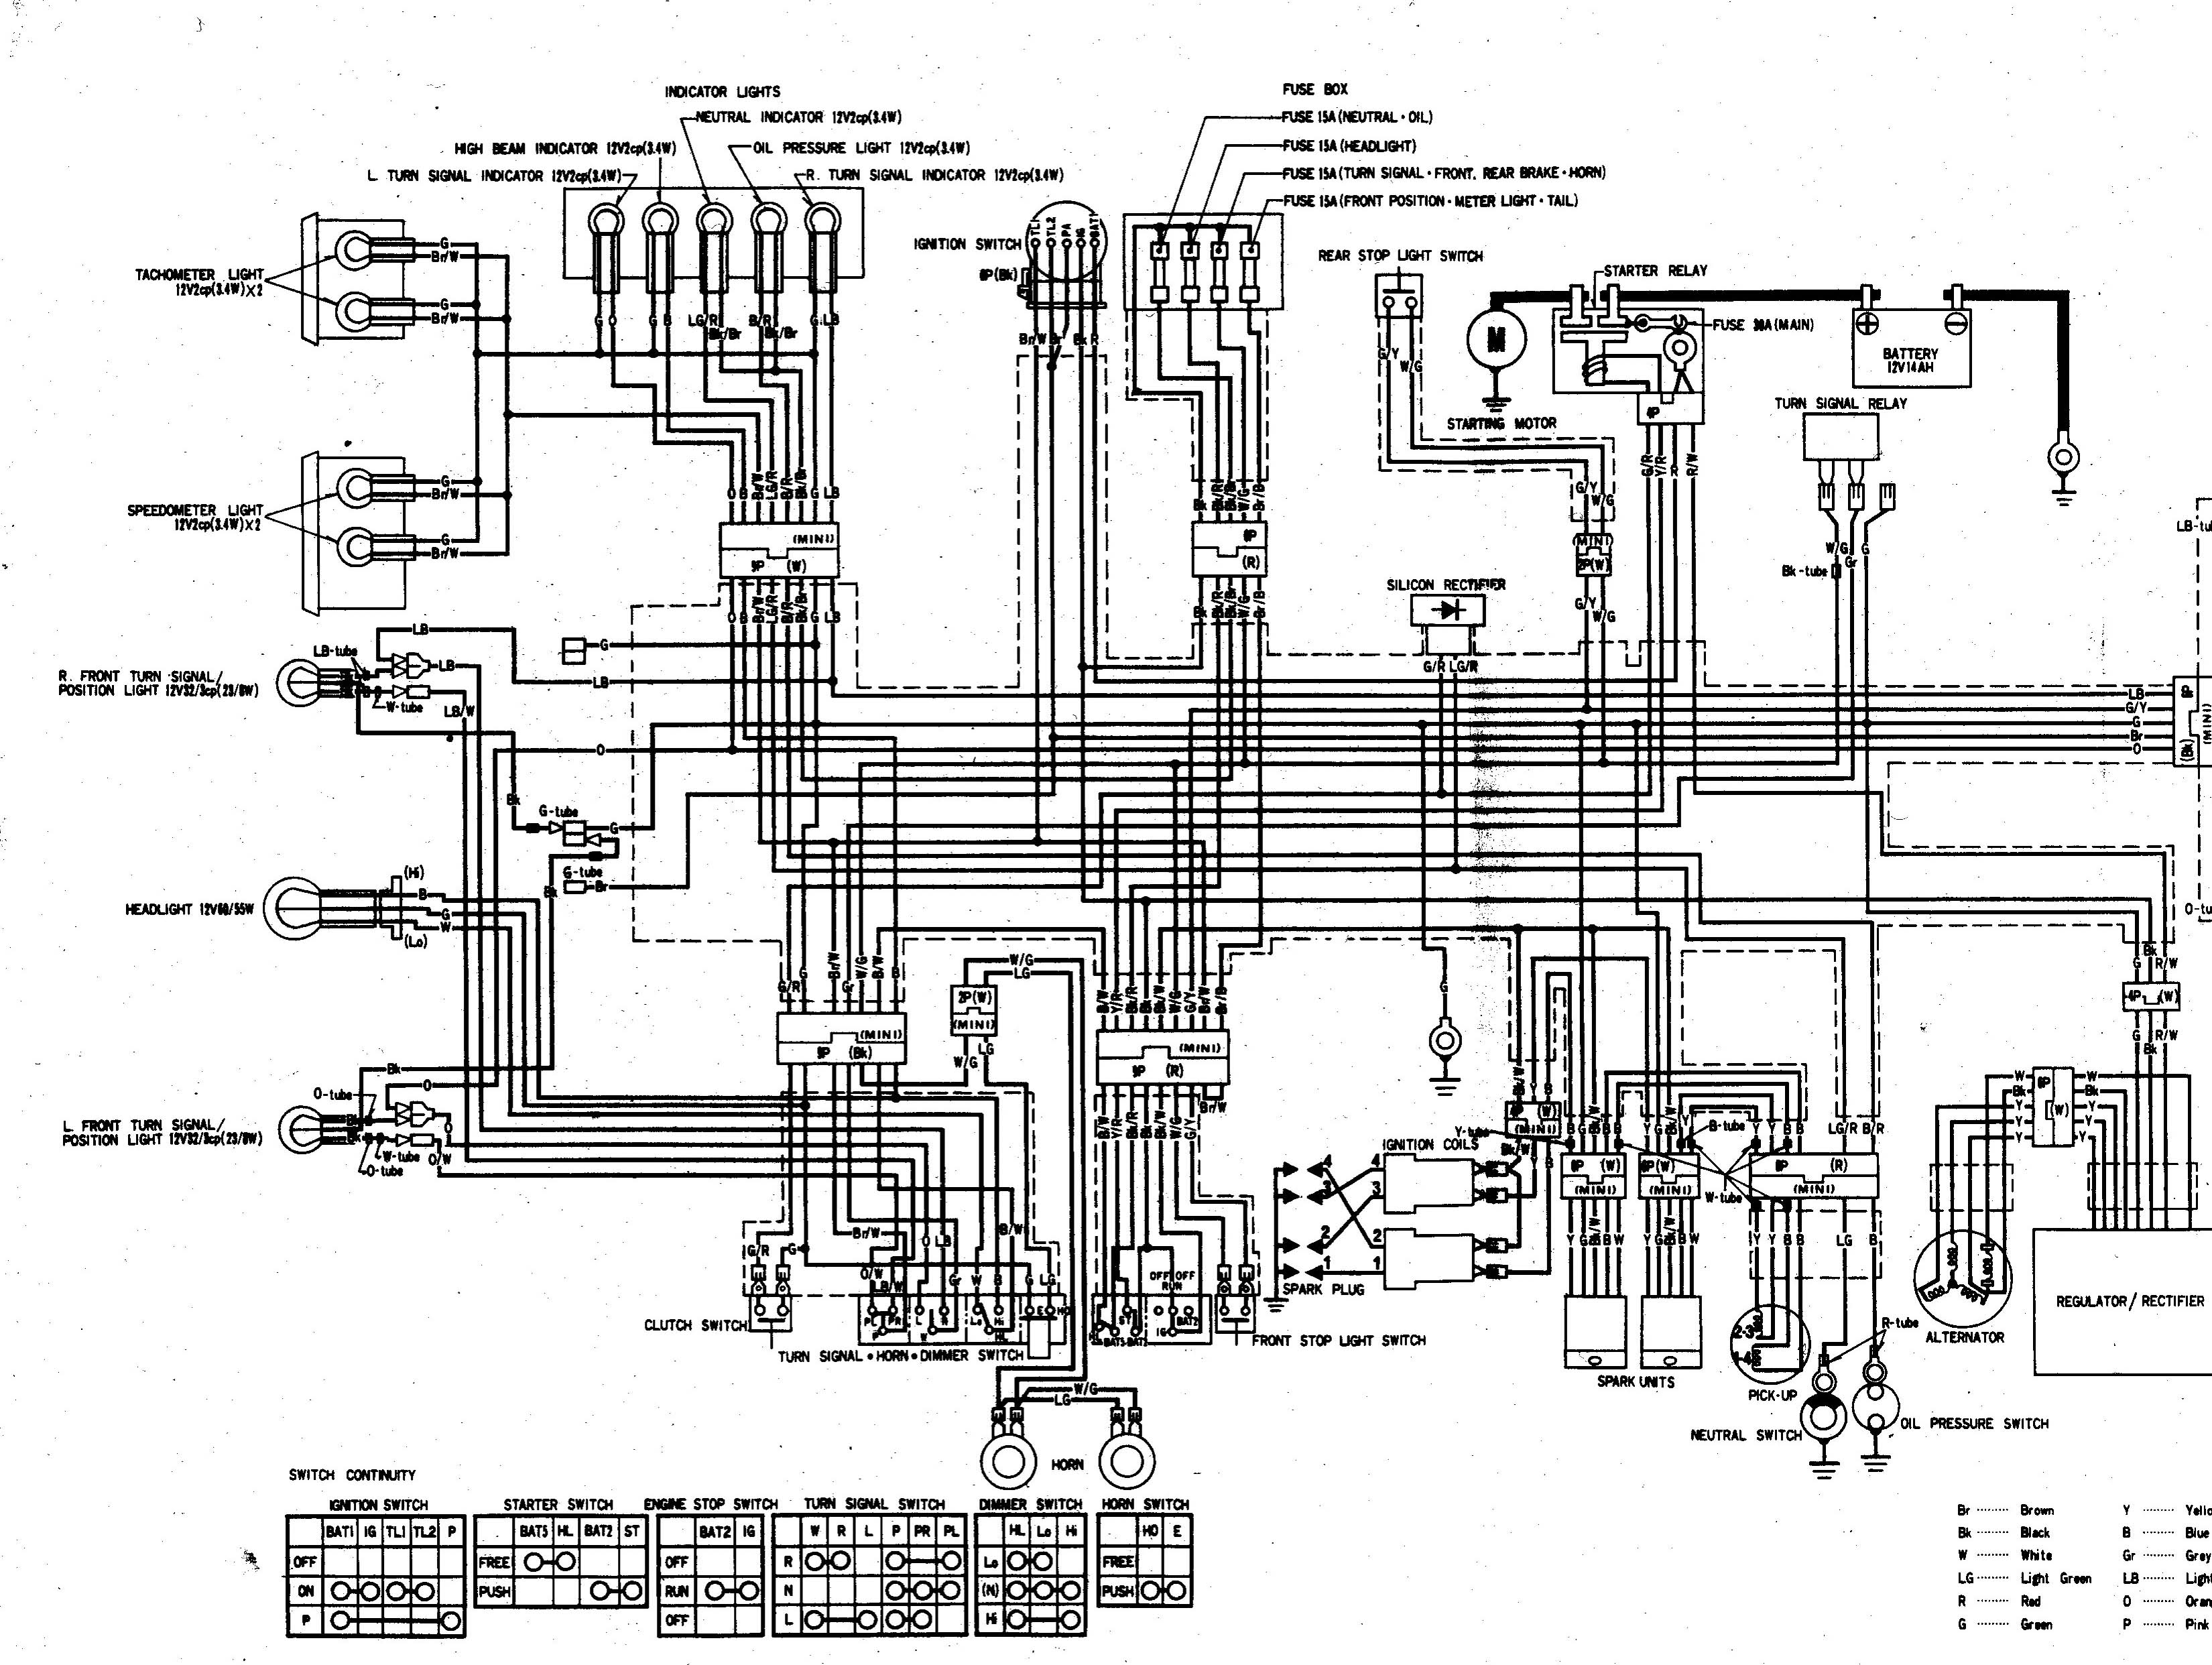 1983 kawasaki 650 csr wiring diagram  1983  free engine